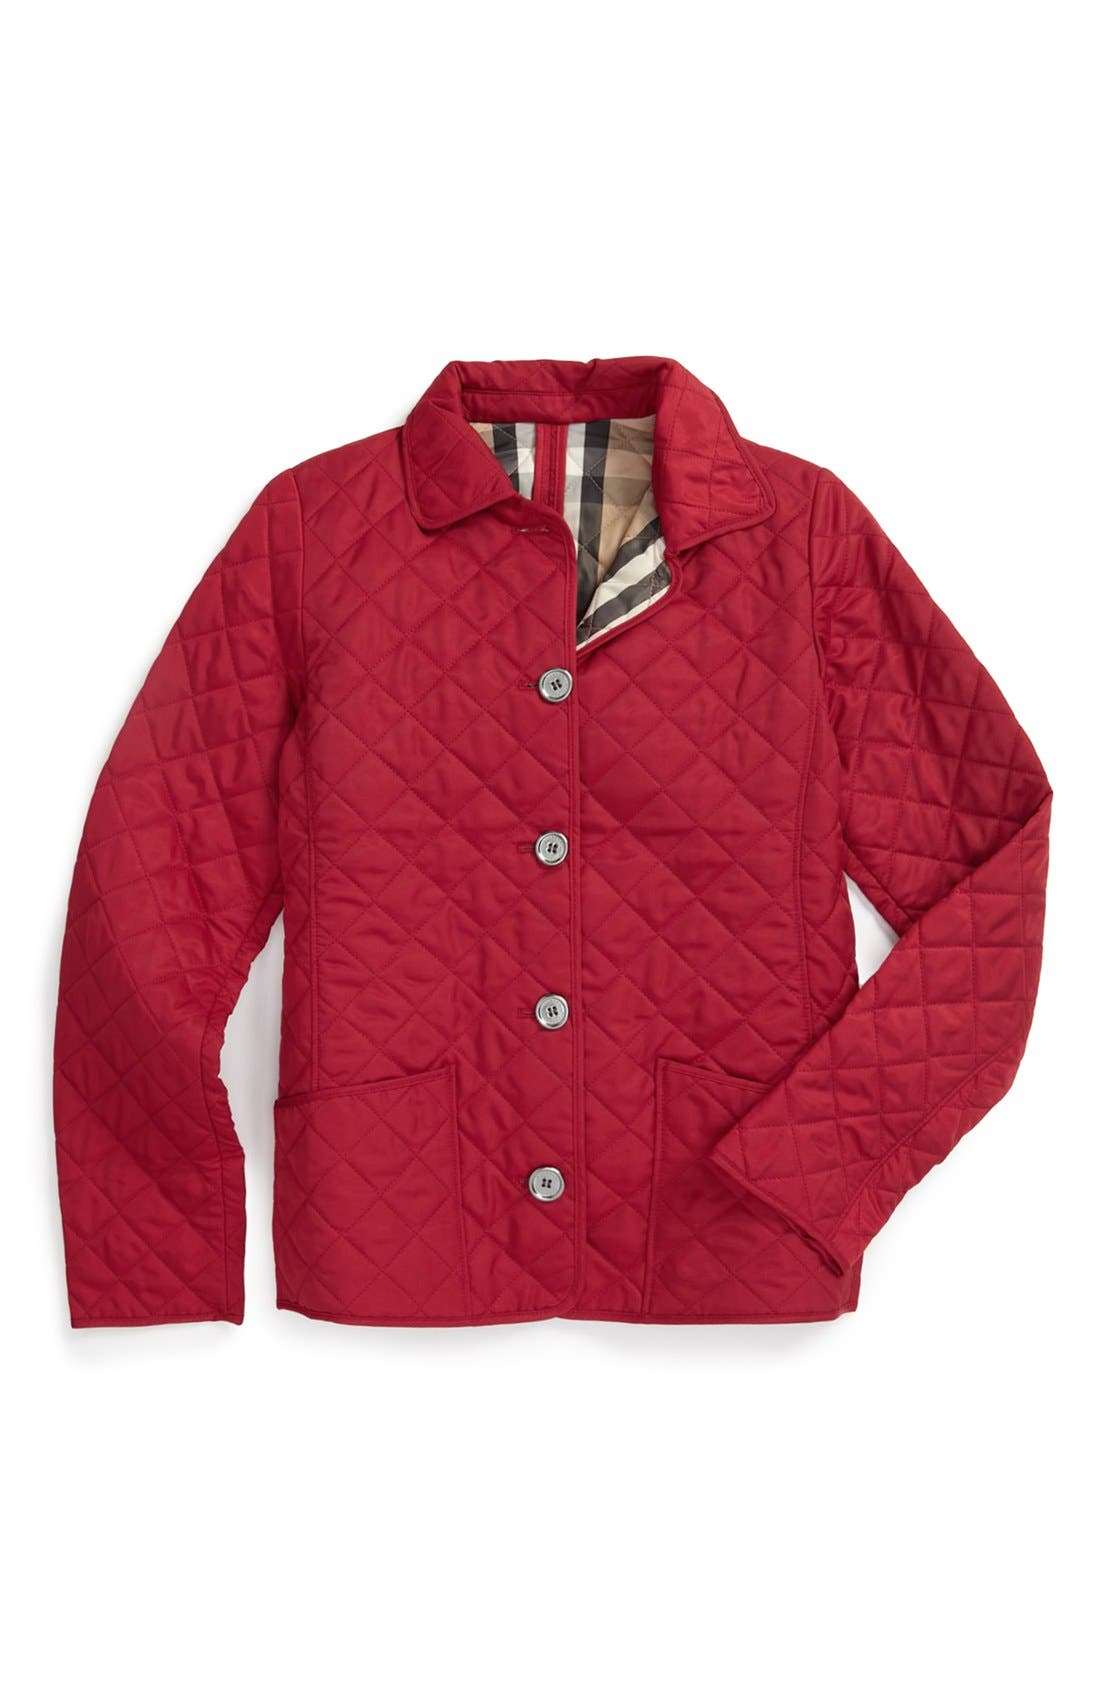 Main Image - Burberry Quilted Check Trim Coat (Little Girls)